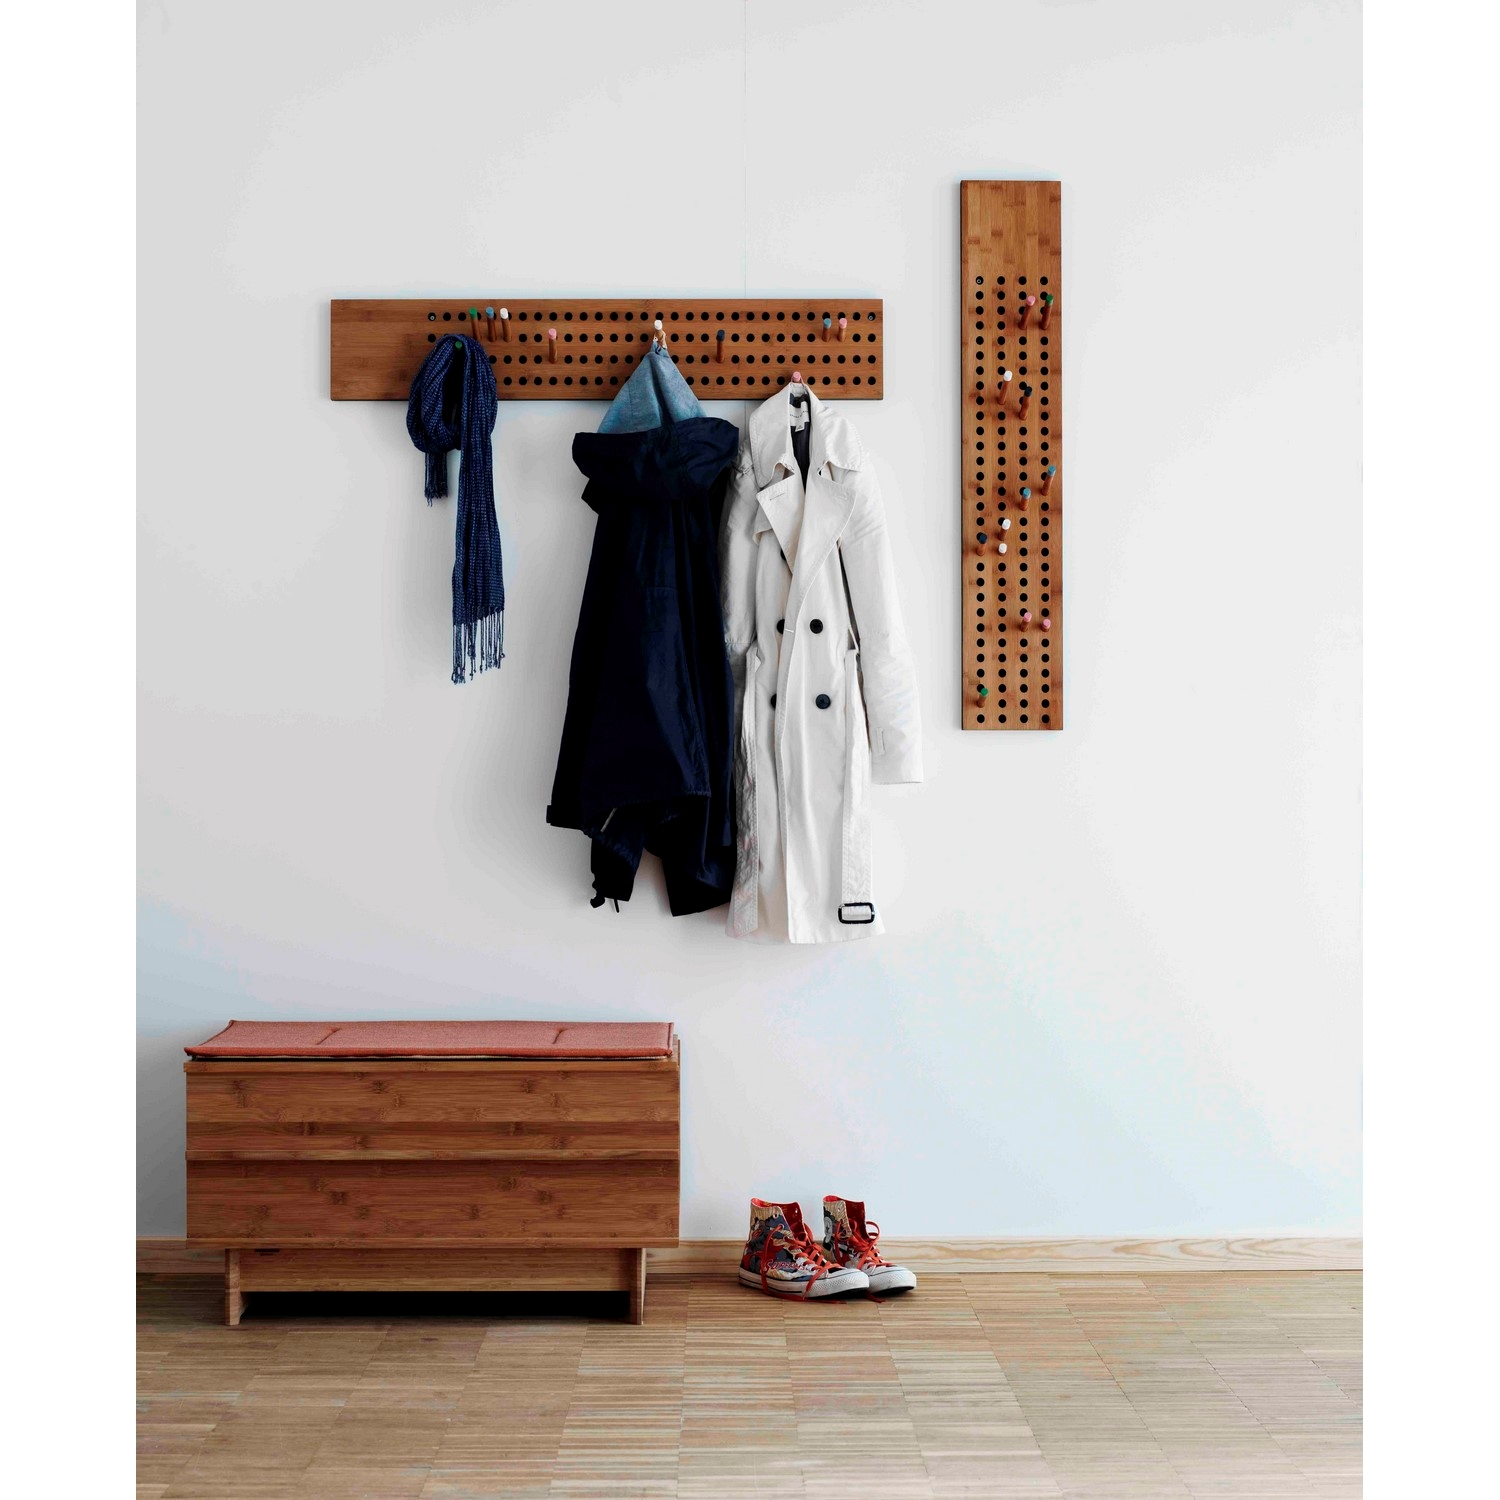 we do wood scoreboard knager kke k b her. Black Bedroom Furniture Sets. Home Design Ideas